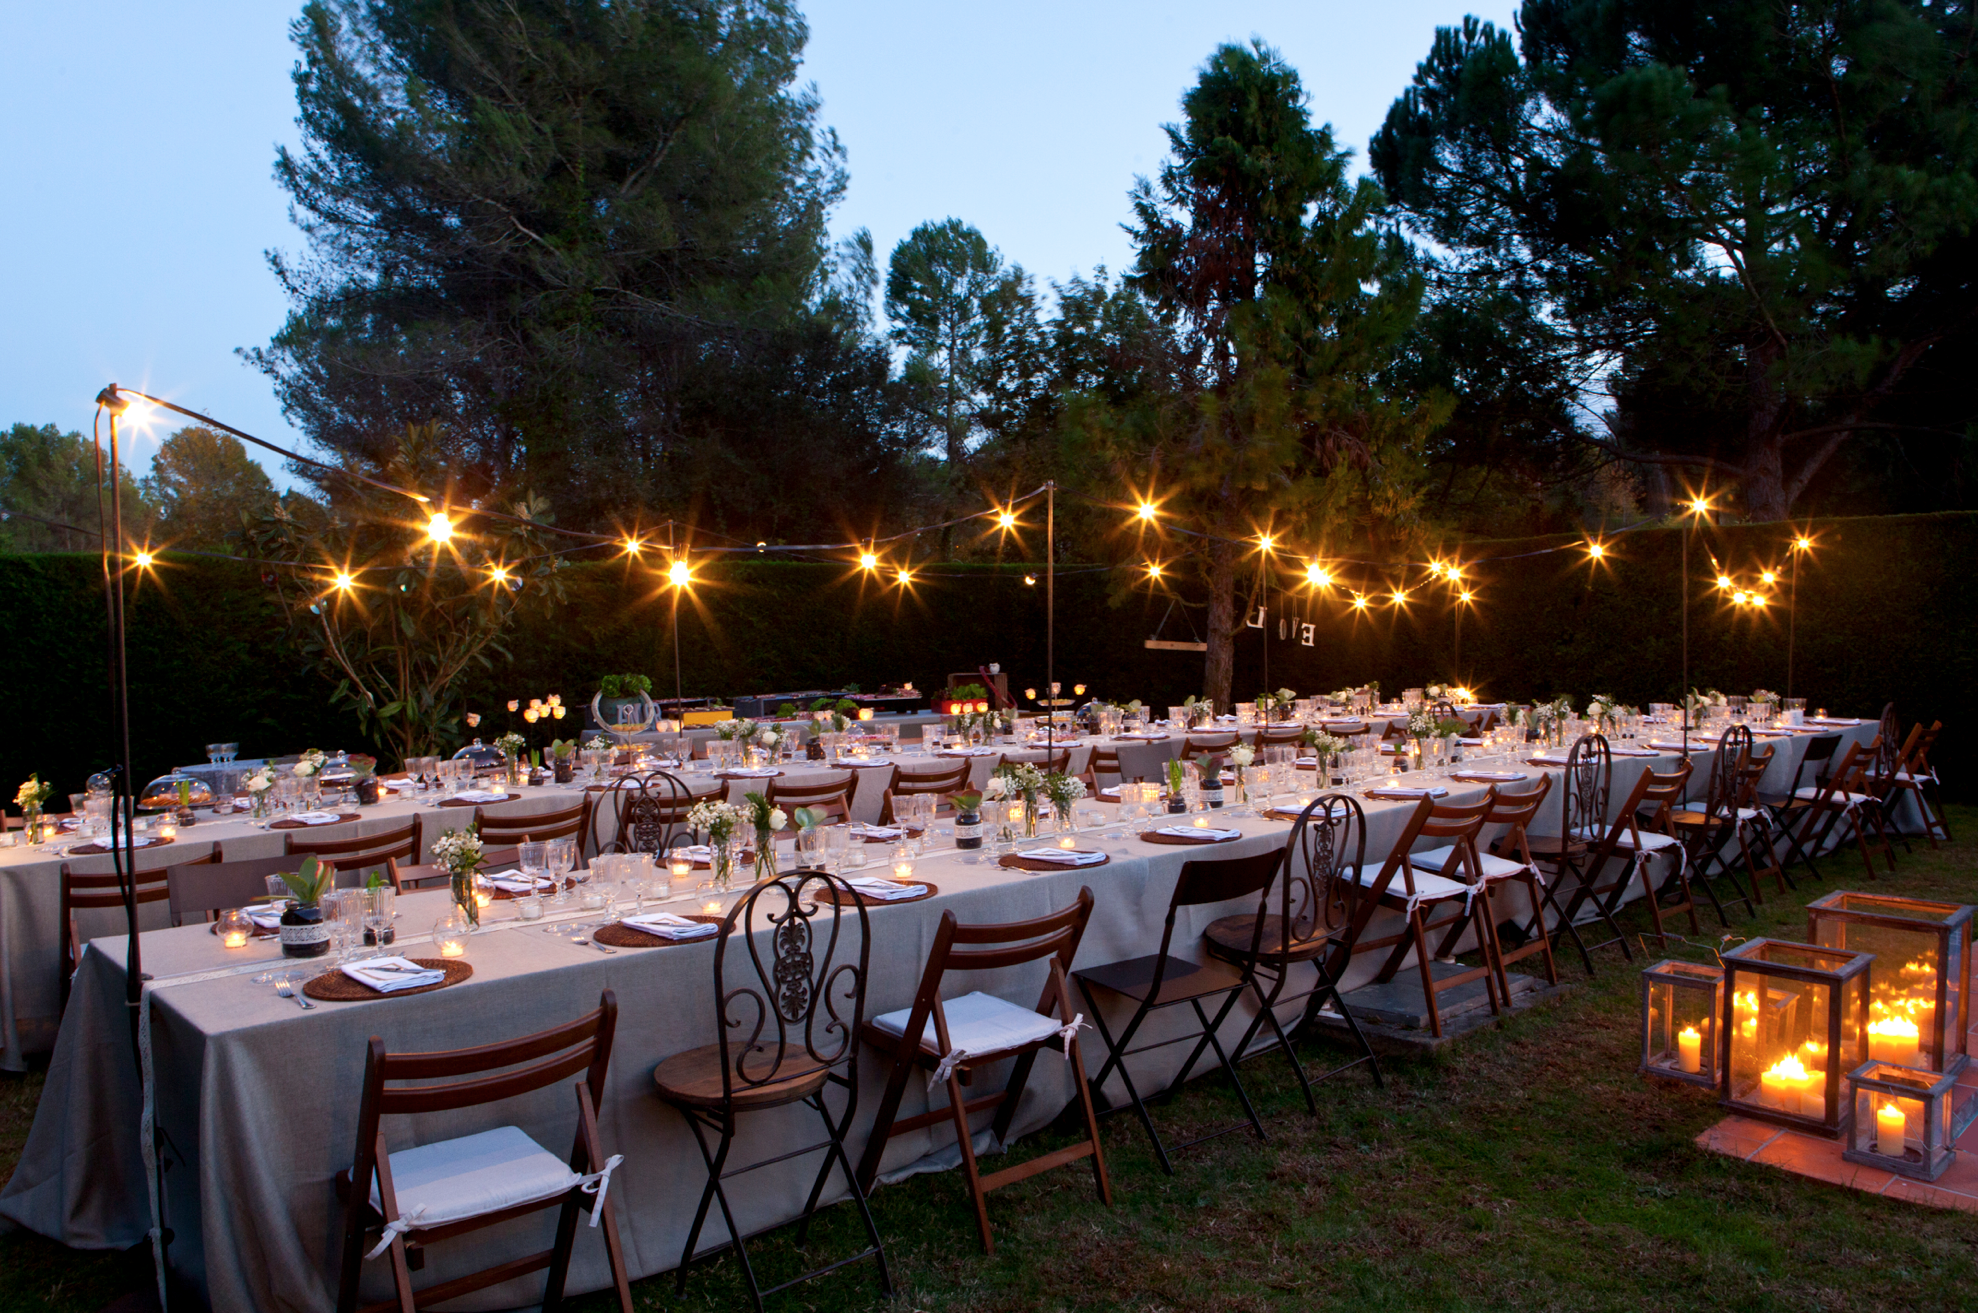 Una boda wonderful por esther conde muymolon for Bodas de noche en jardin